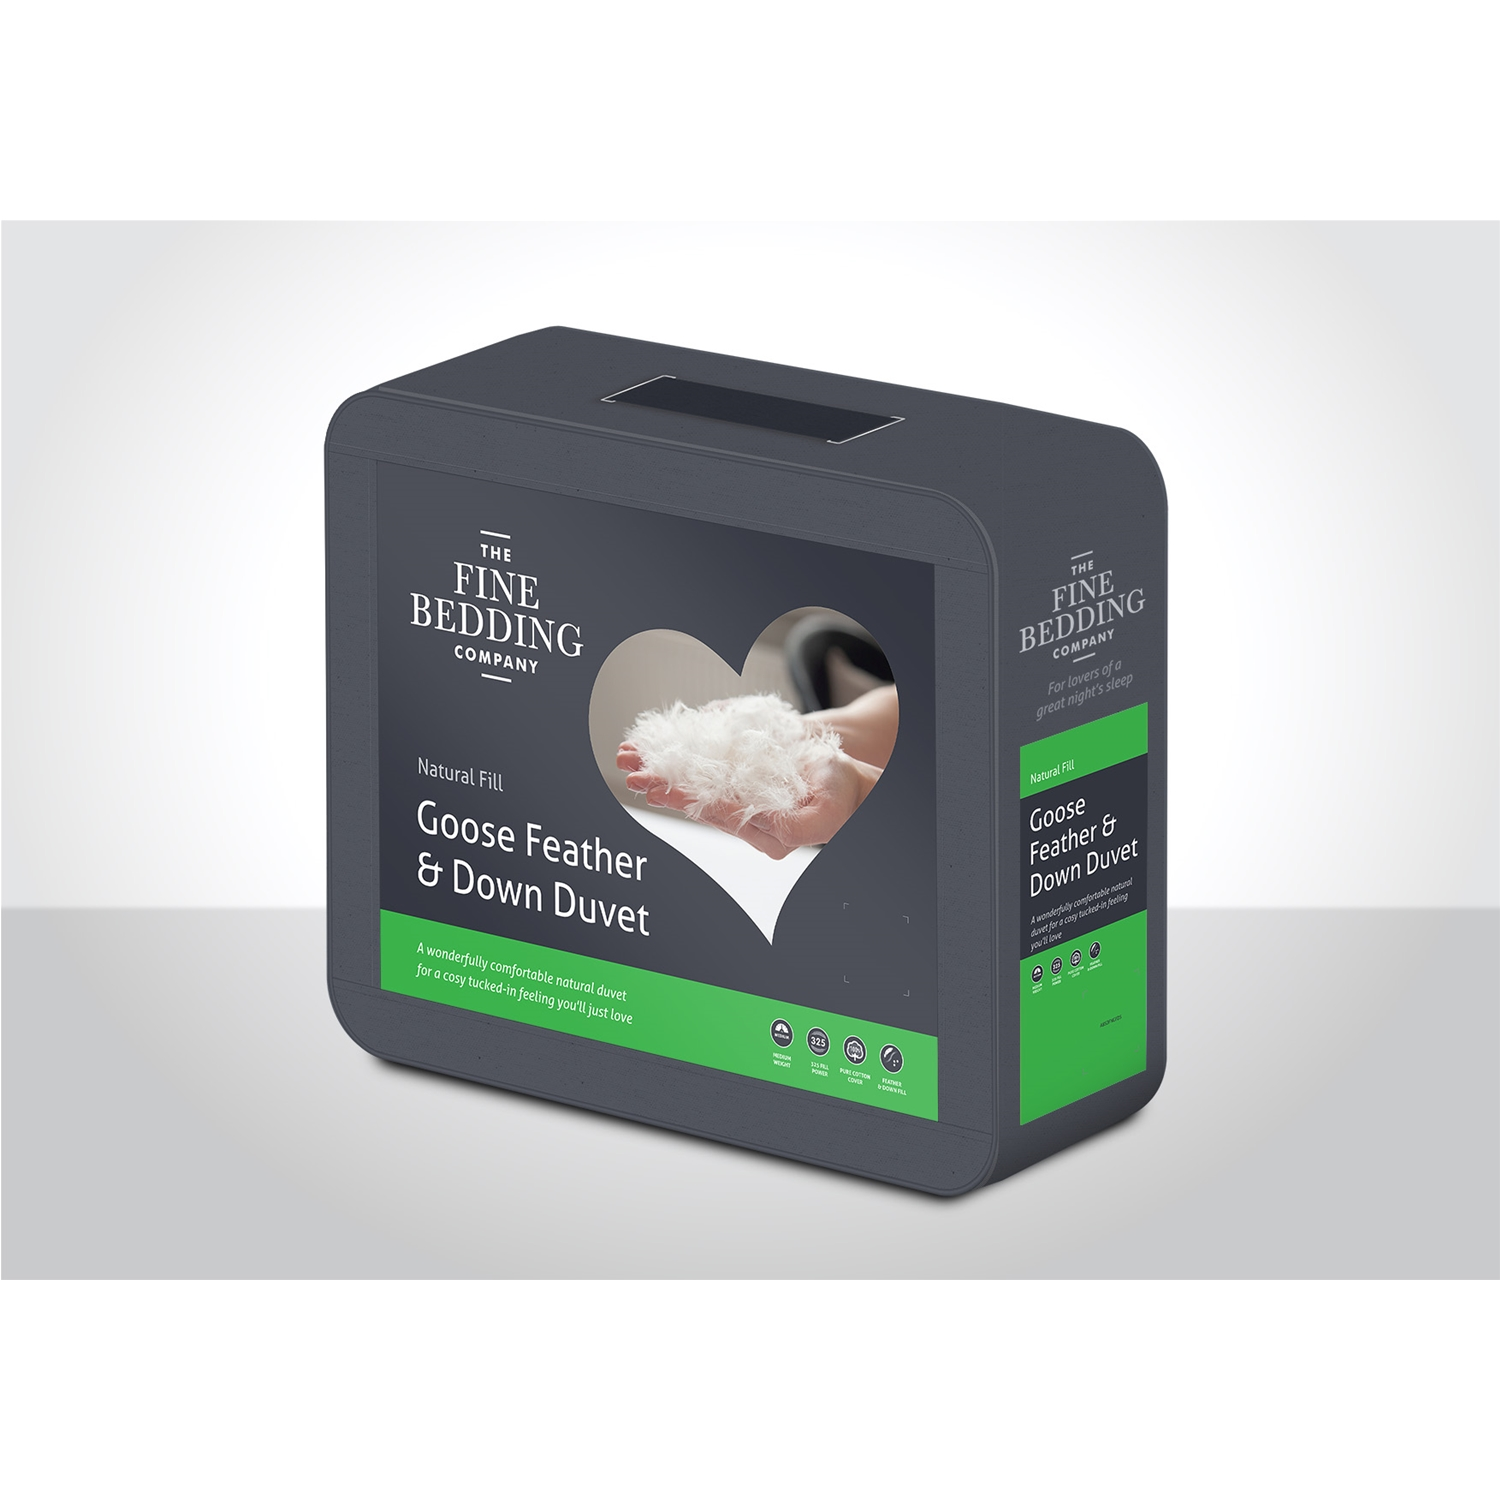 Image of Fine Bedding Company Goose Feather & Down Duvet, 4.5 Tog, King